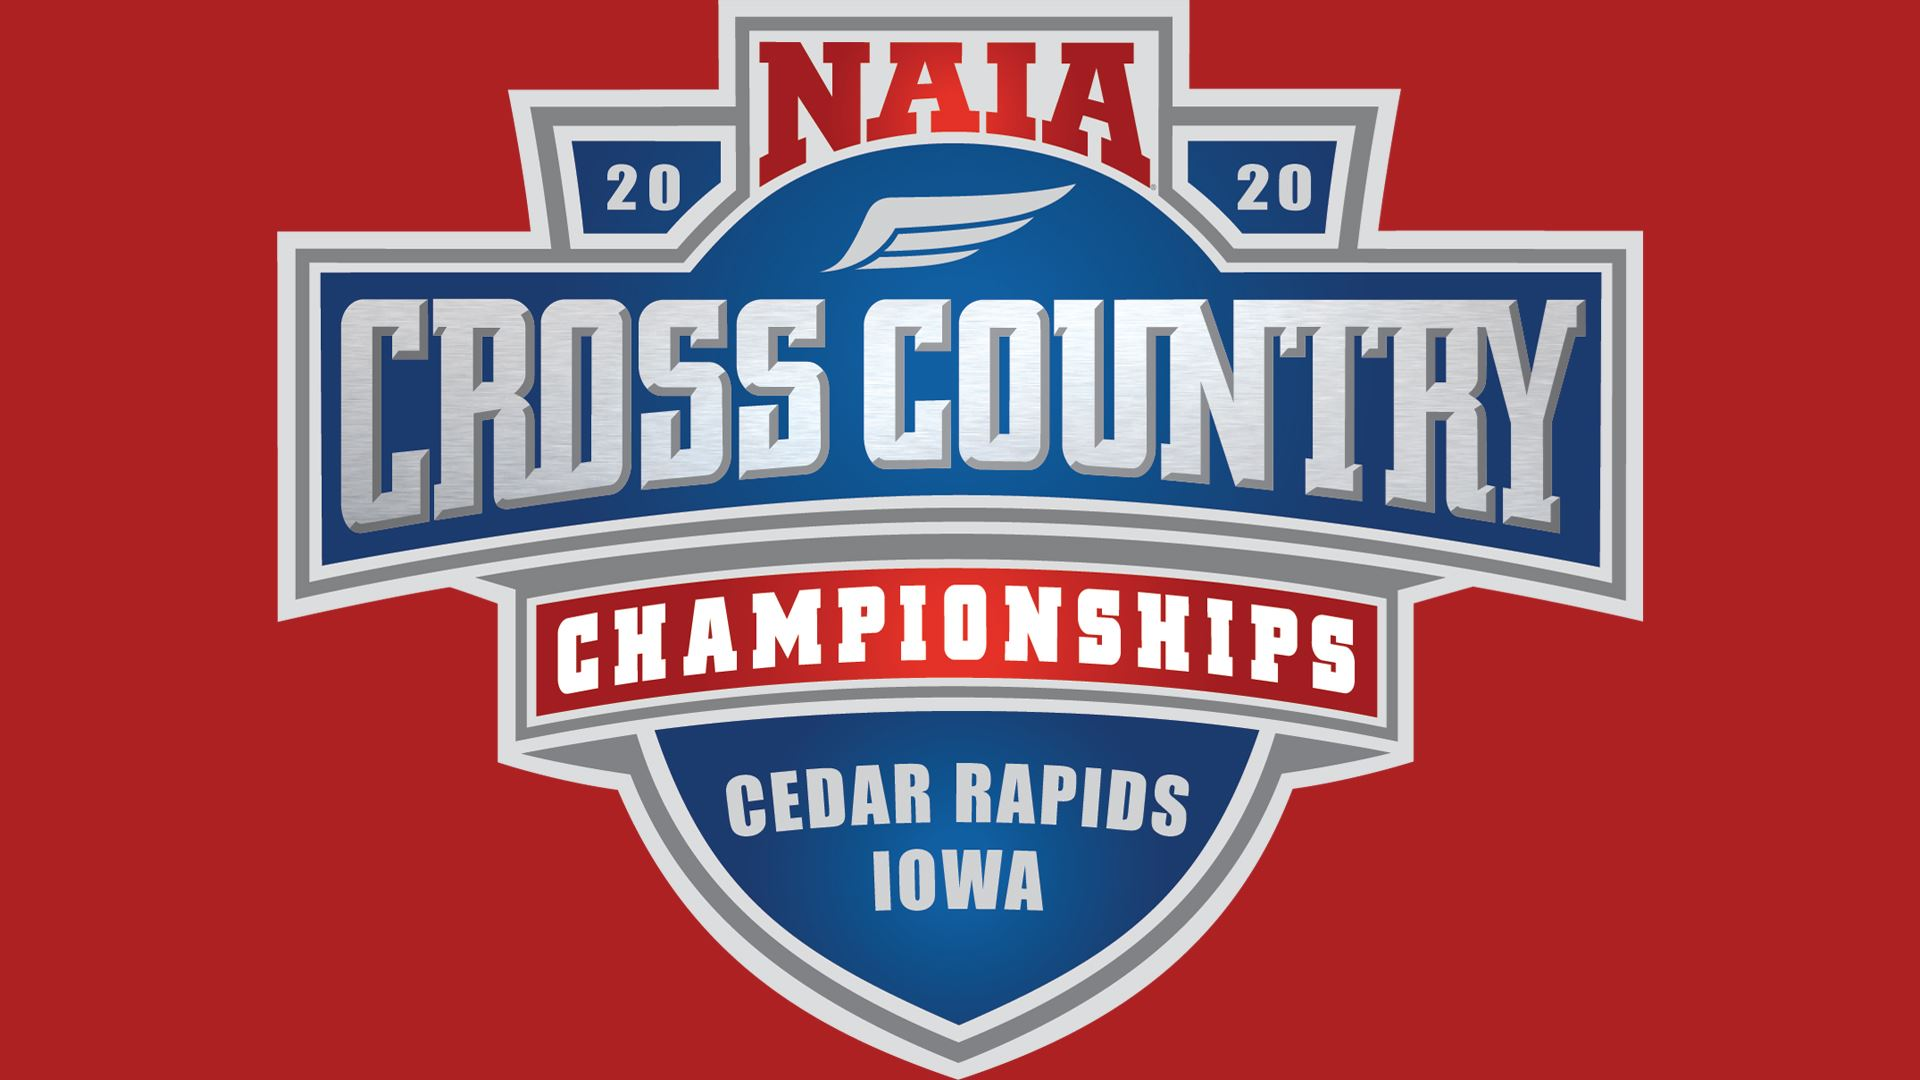 NAIA_Cross_Country_Championships_Live_Streaming